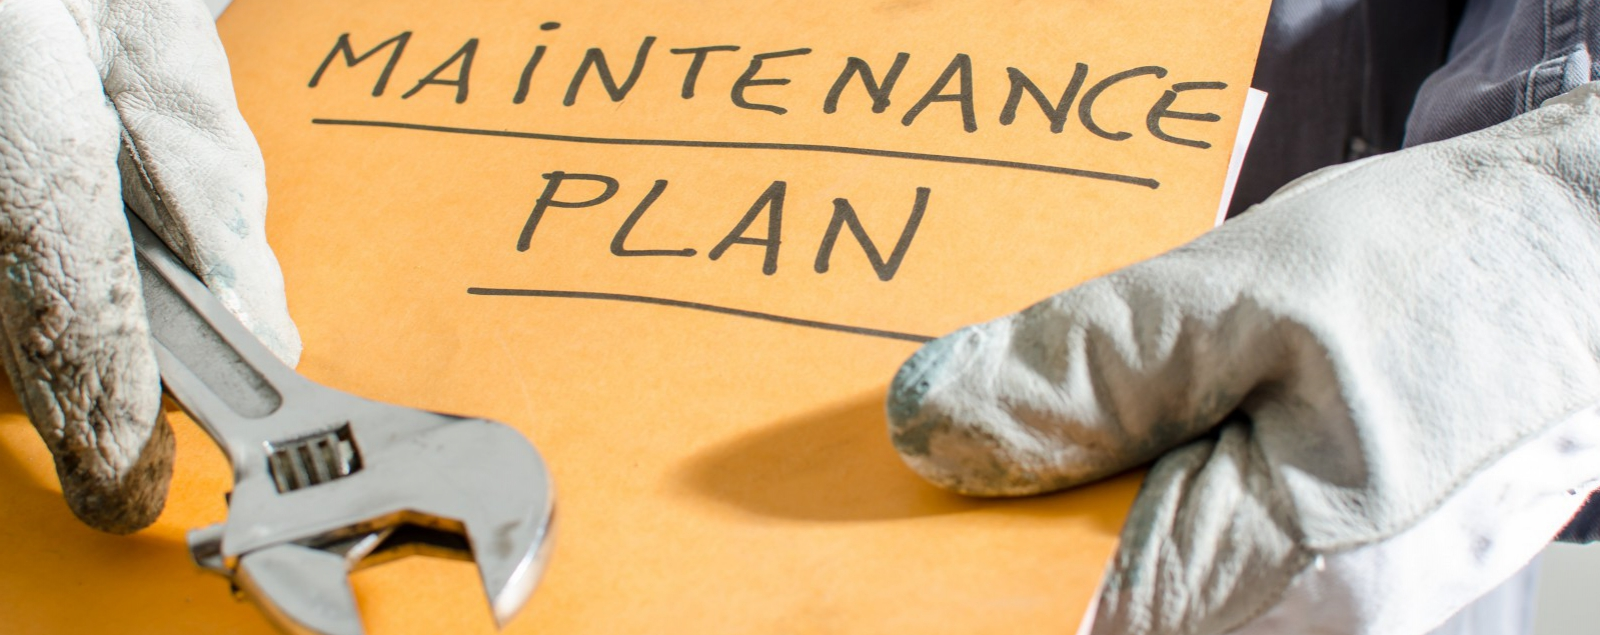 preventative maintenance planning keeps your equipment in optimal condition